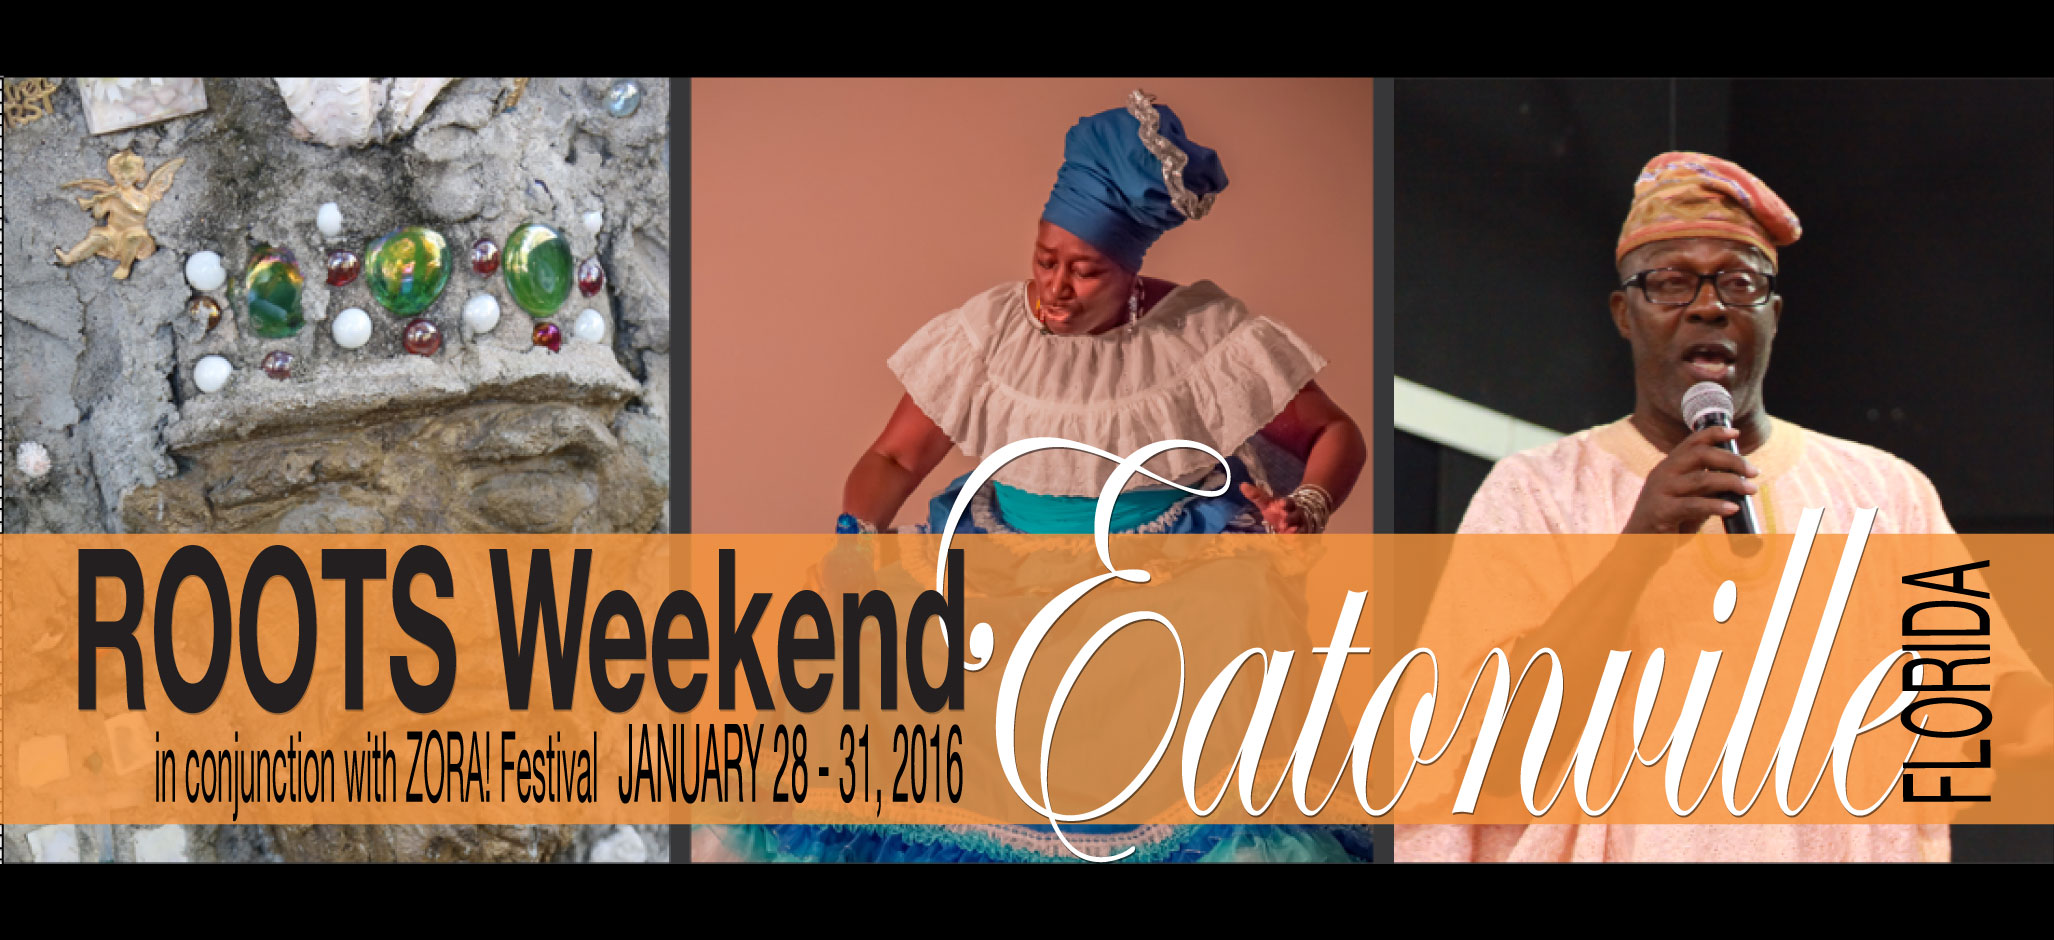 ROOTS Weekend Eatonville